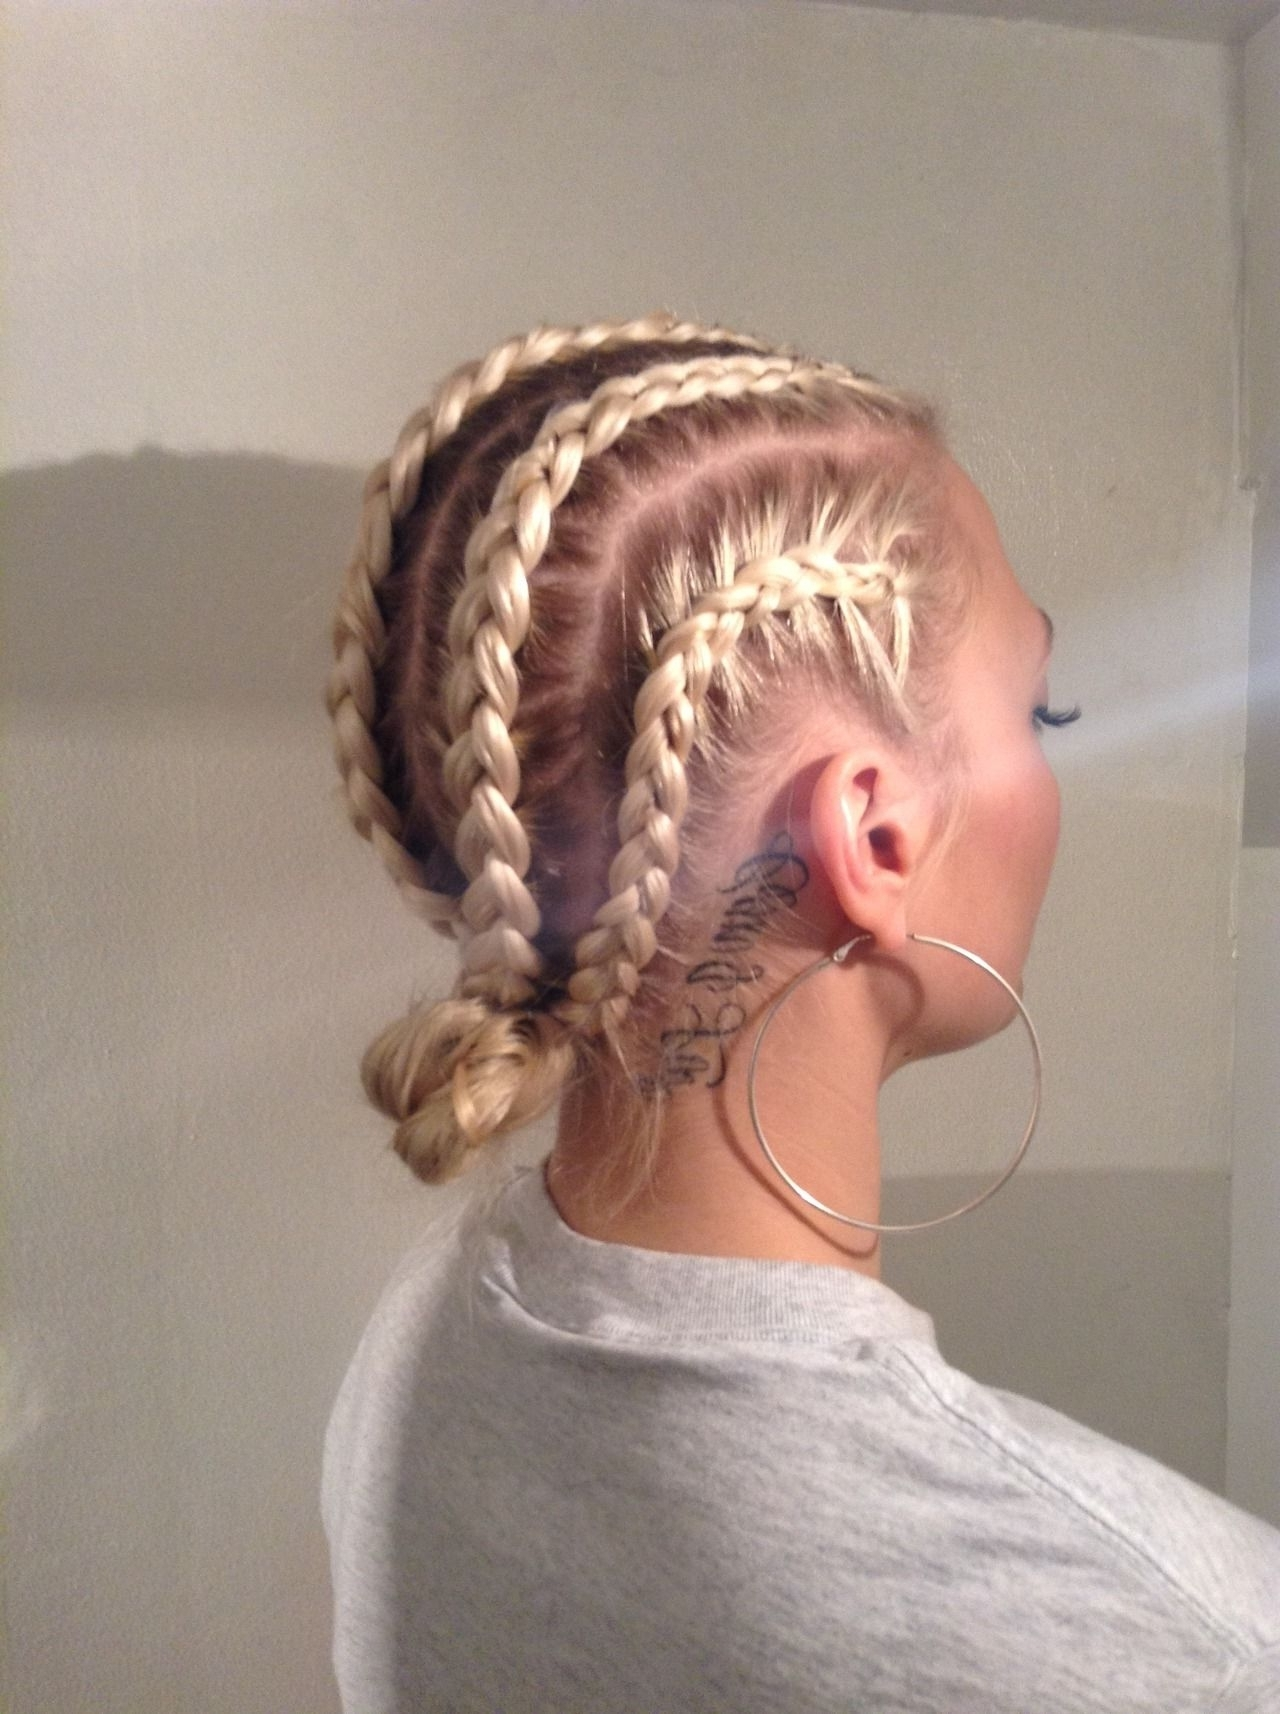 Recent Cornrows Hairstyles For White Girl Within If They're White And They Do Cornrows On Their Hair. (Gallery 5 of 15)